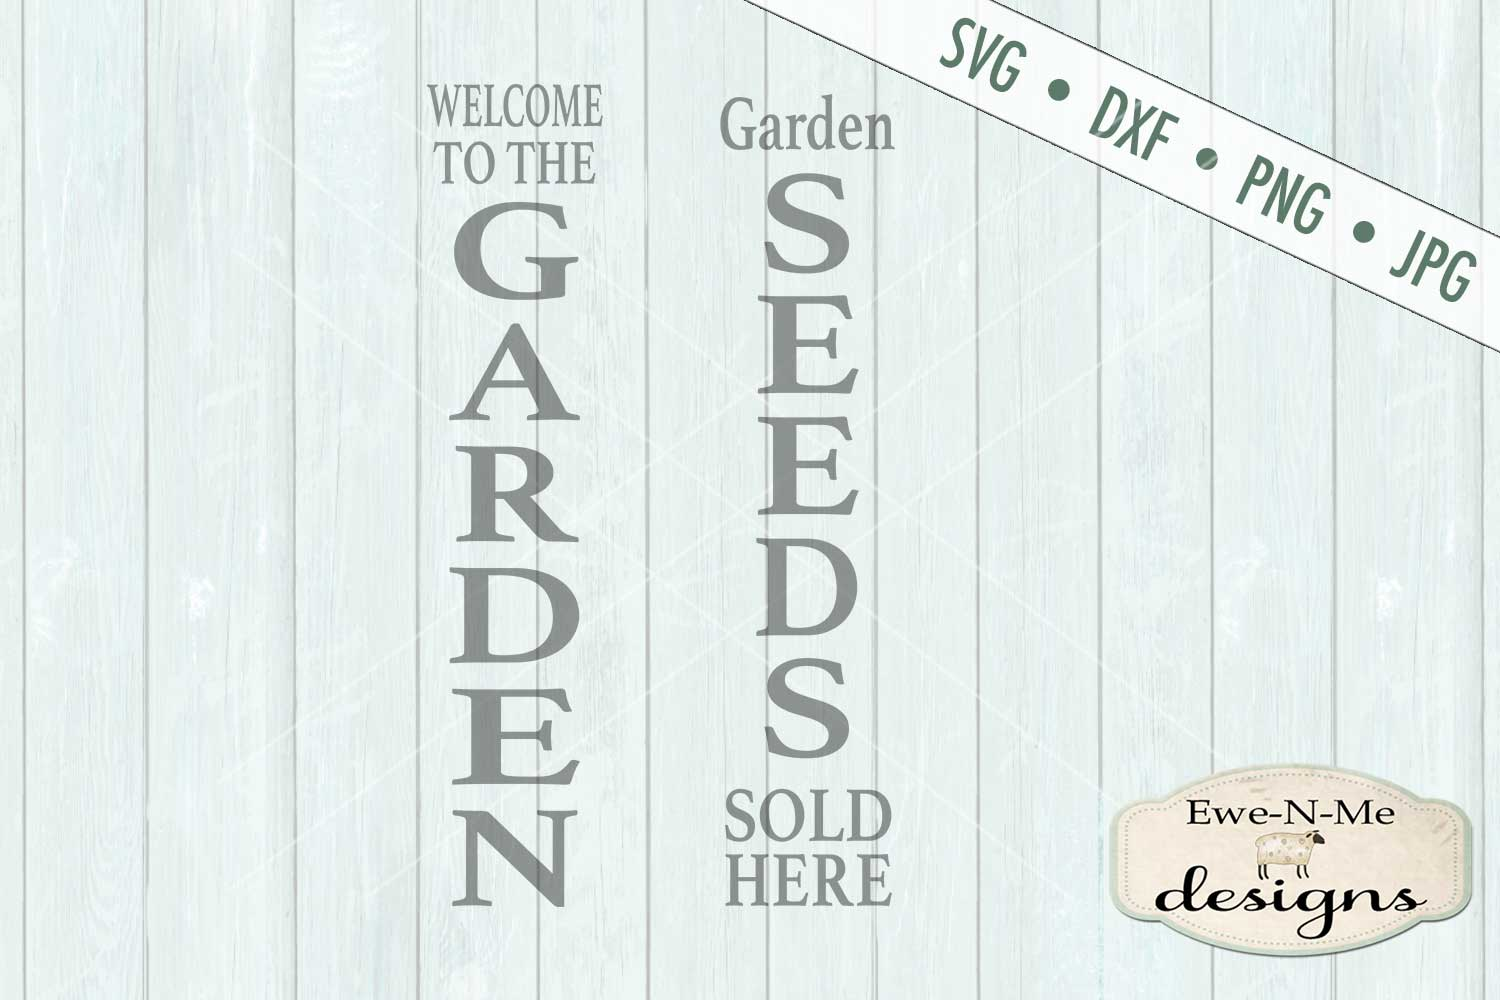 Garden Seeds Vertical Porch Sign SVG DXF Files example image 2